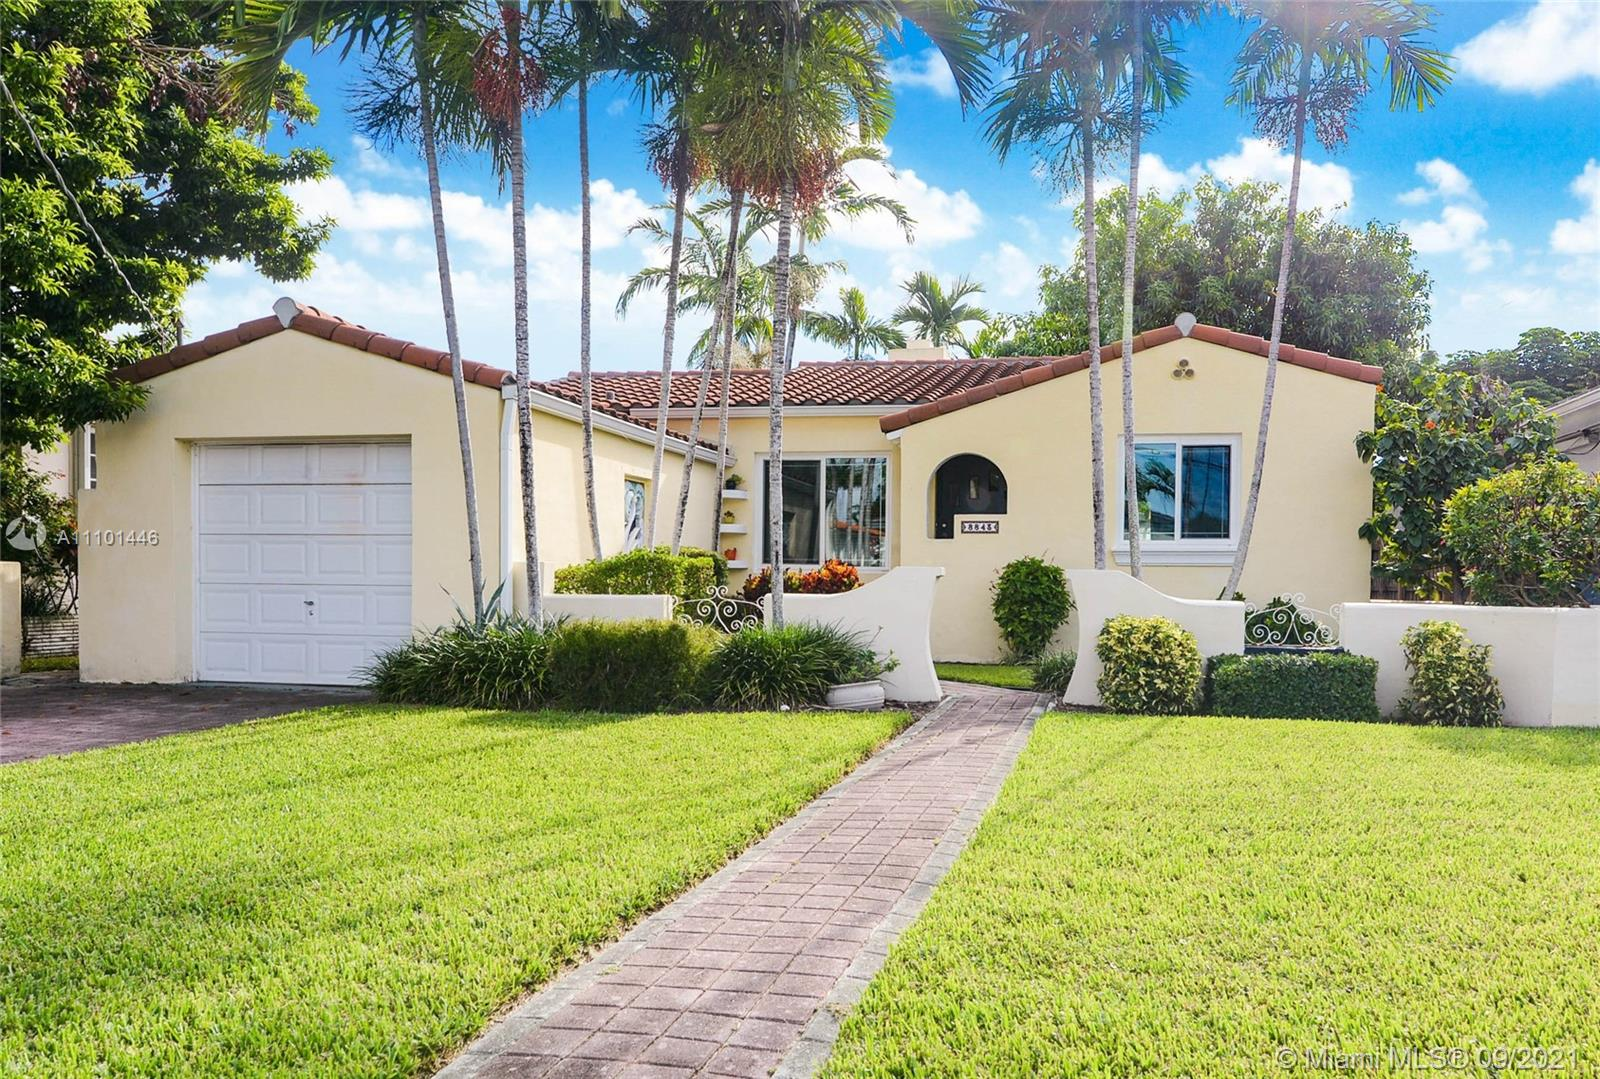 Single Family Home,For Sale,8843 Carlyle Ave, Surfside, Florida 33154,Brickell,realty,broker,condos near me